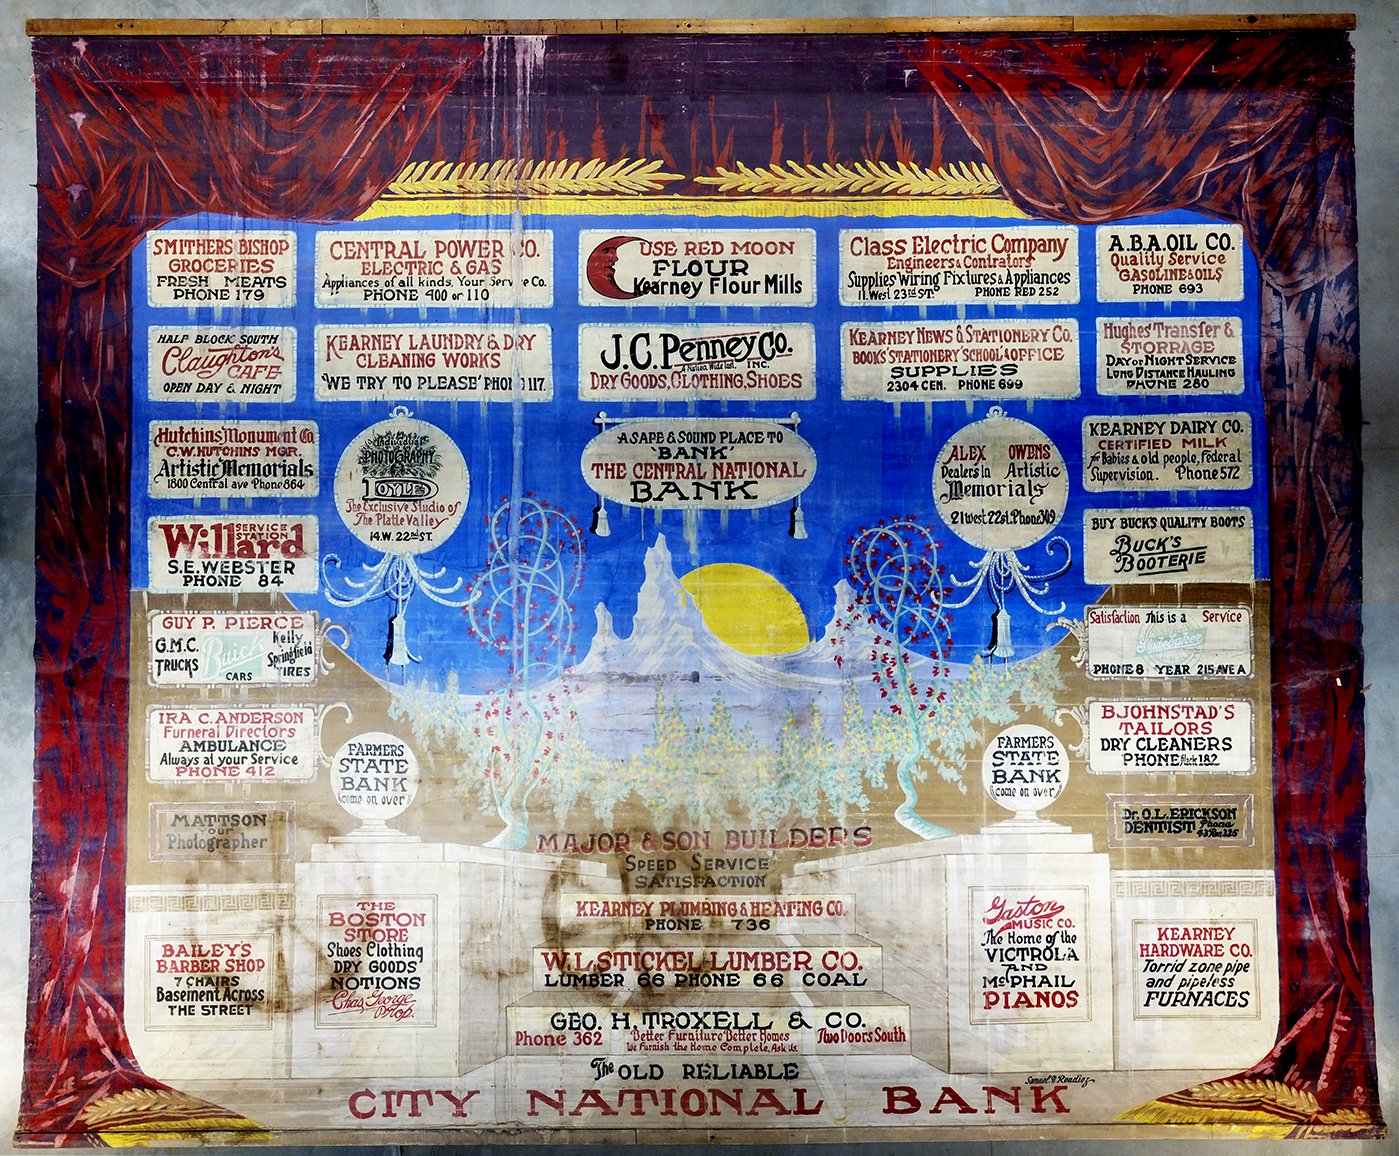 This advertising curtain is one of the few remaining artifacts related to the Kearney Opera House.